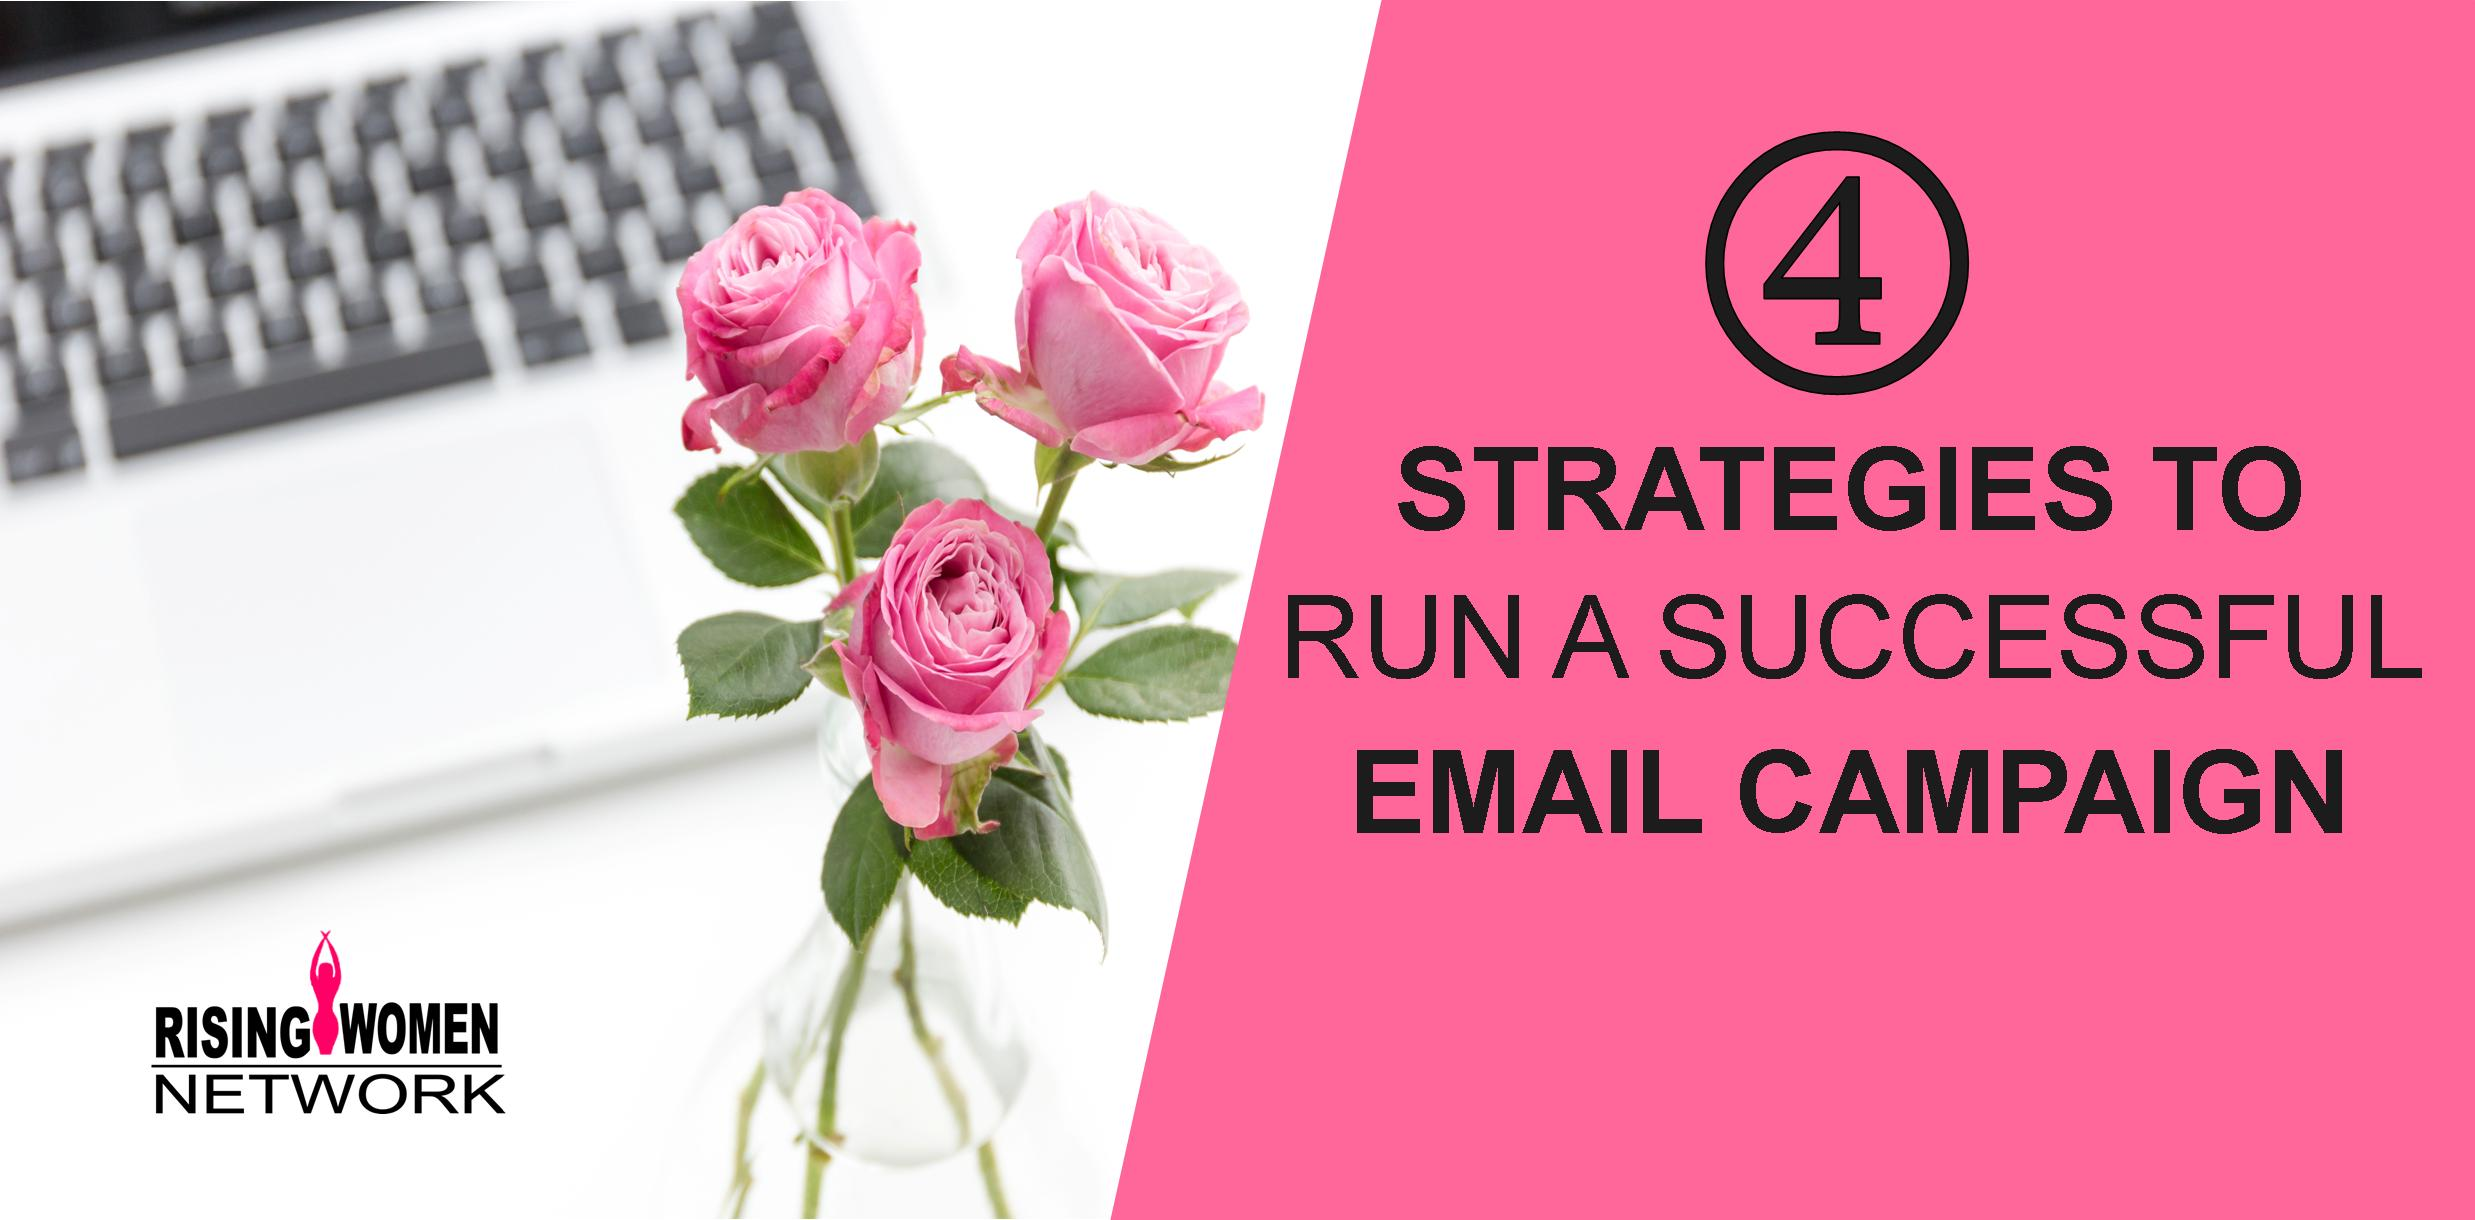 If planned and executed properly, email marketing is the cheapest method to retain existing customers and enroll new customers for repeat purchases.In this post I'm going to share 4 easy tips on how to execute a successful email marketing campaign for your eCommercestore.